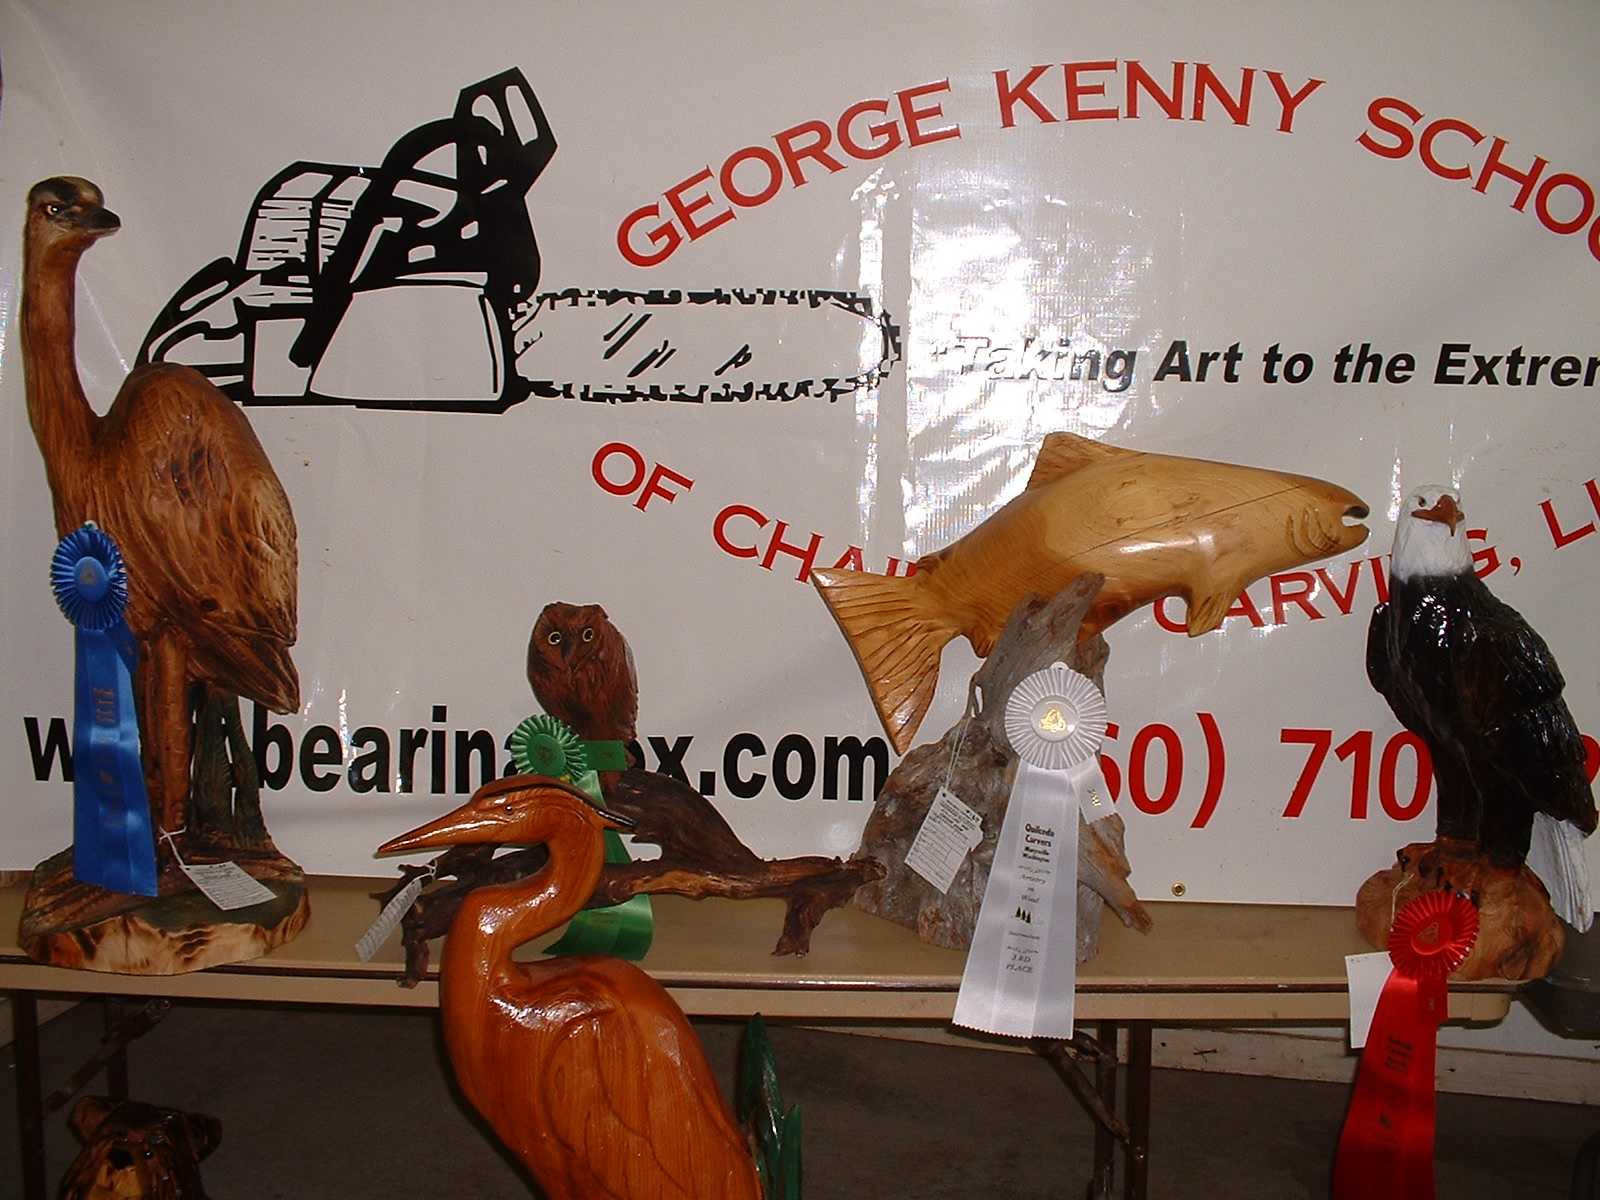 These chainsaw carving students are a cut above